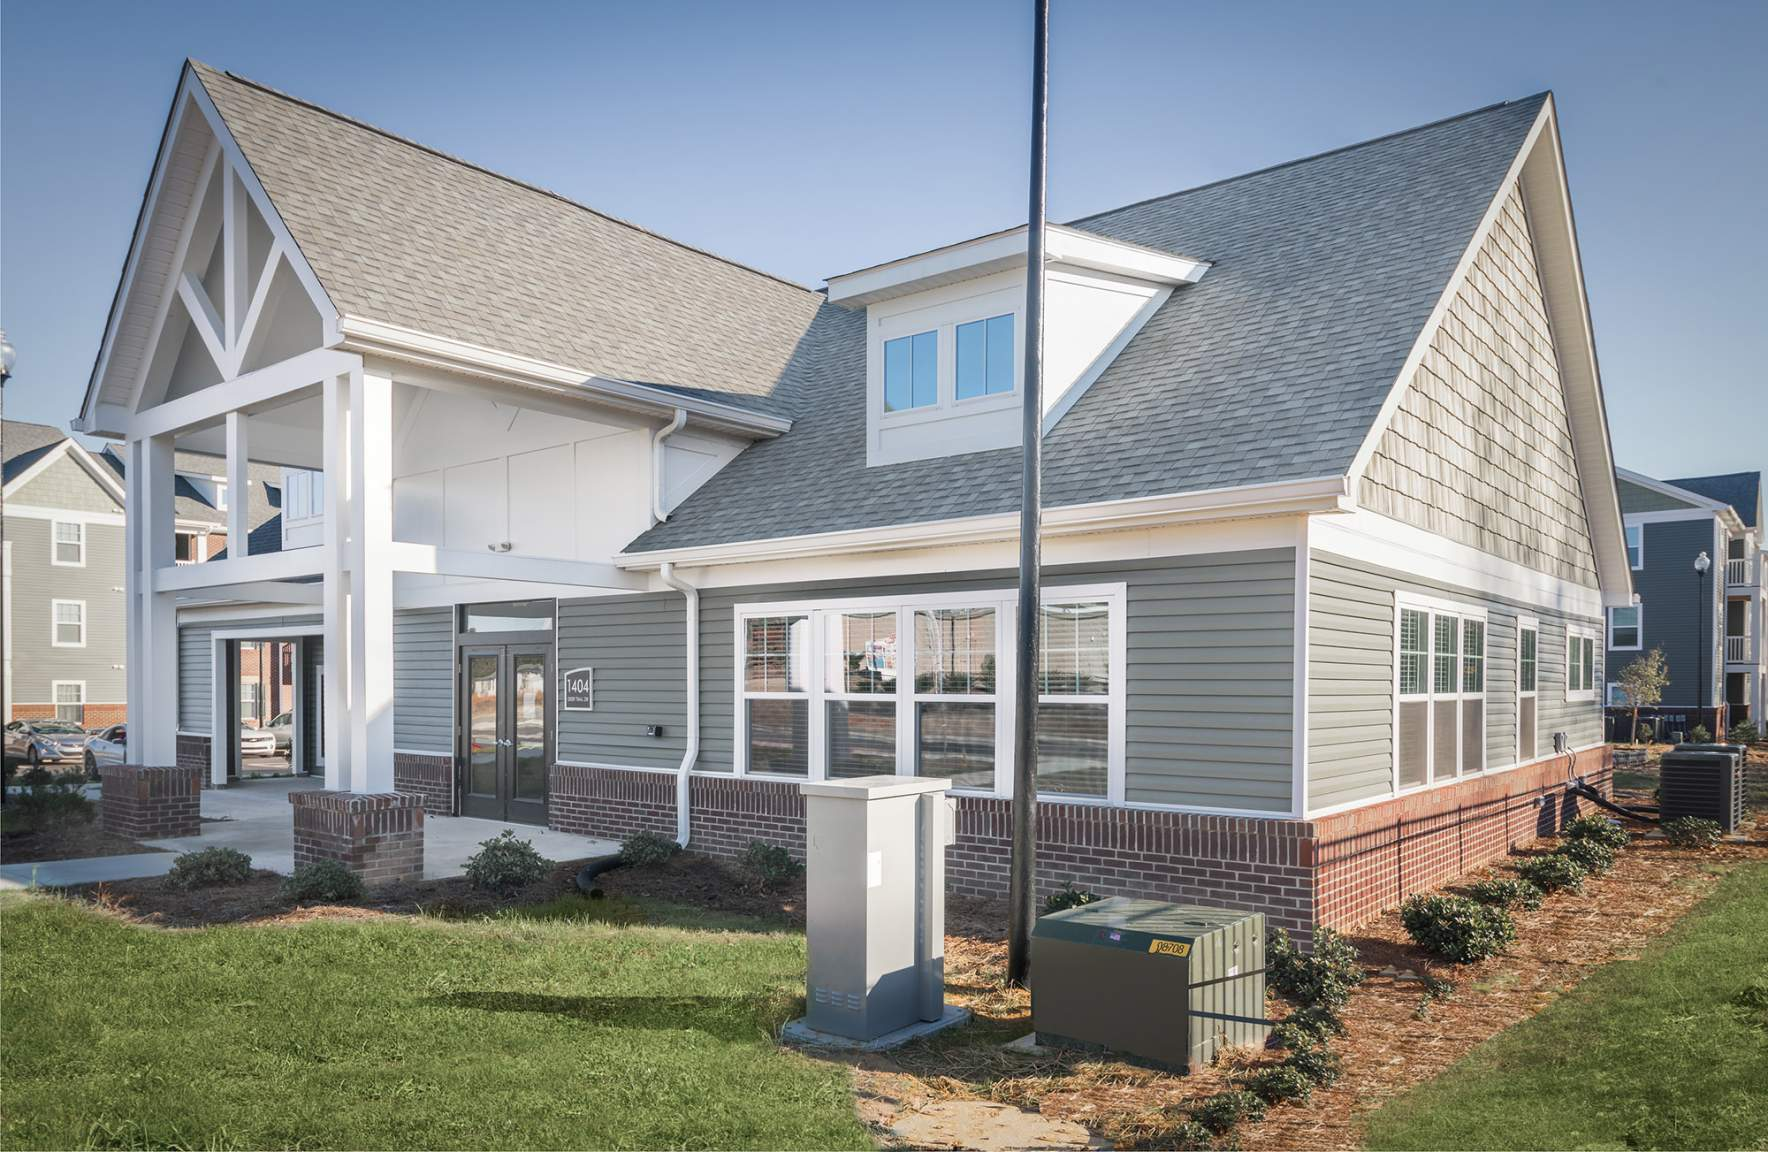 The Cliffdale ApartmentComplex for Rent in Fayetteville